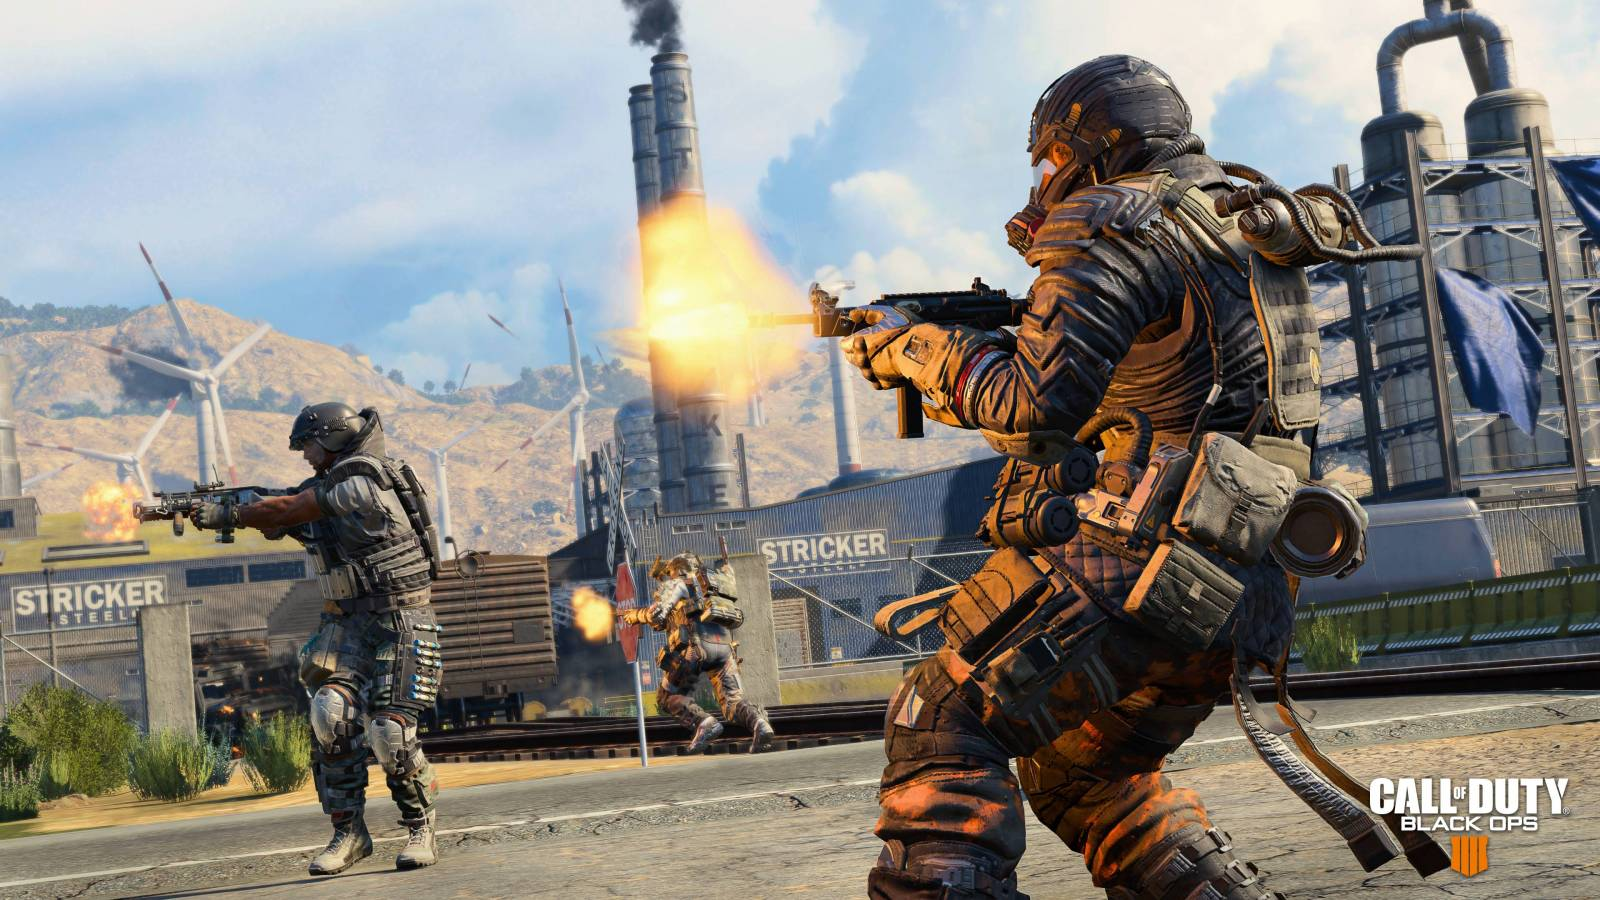 Screenshot from Call of Duty Blackout